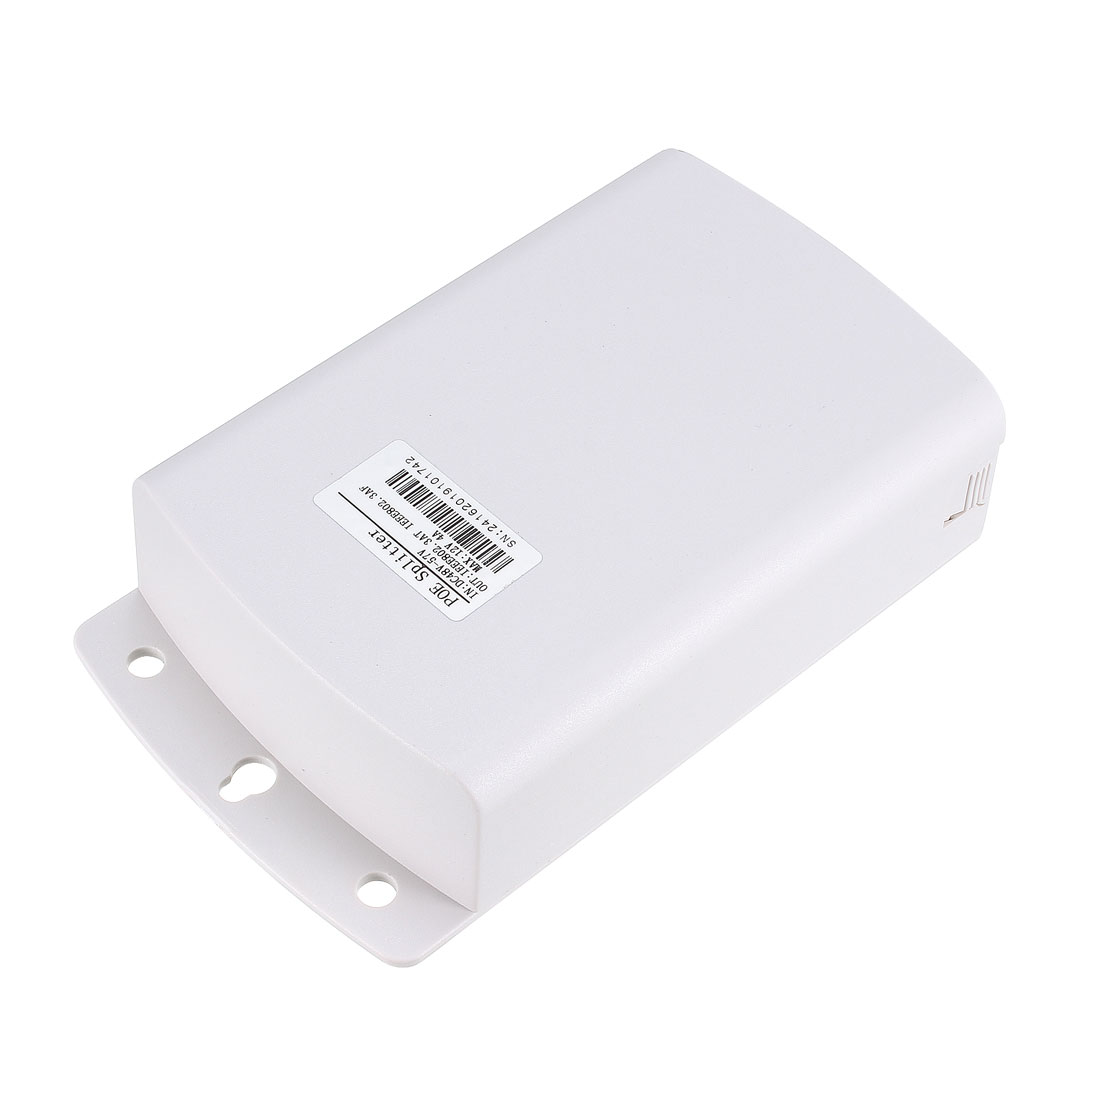 Active PoE Splitter Waterproof Power over Ethernet 48V to 12V IEEE 802.3at/af